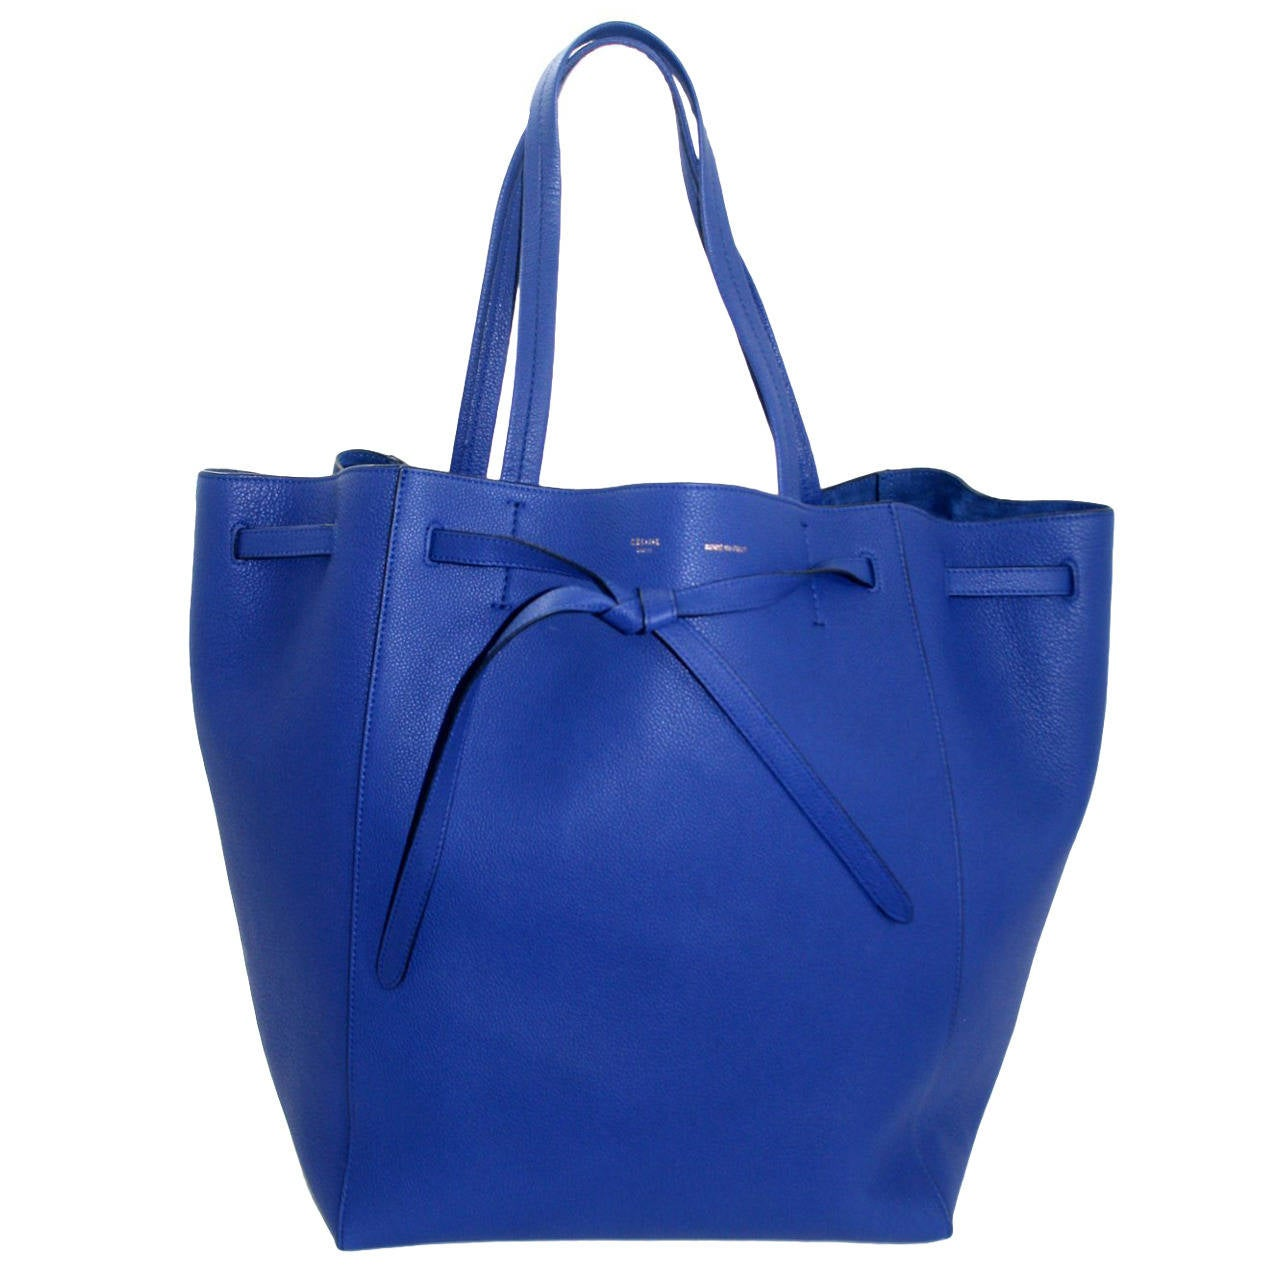 celine soft leather tote - Celine Blue Leather Medium Cabas Phantom Tote Bag with Belt at 1stdibs